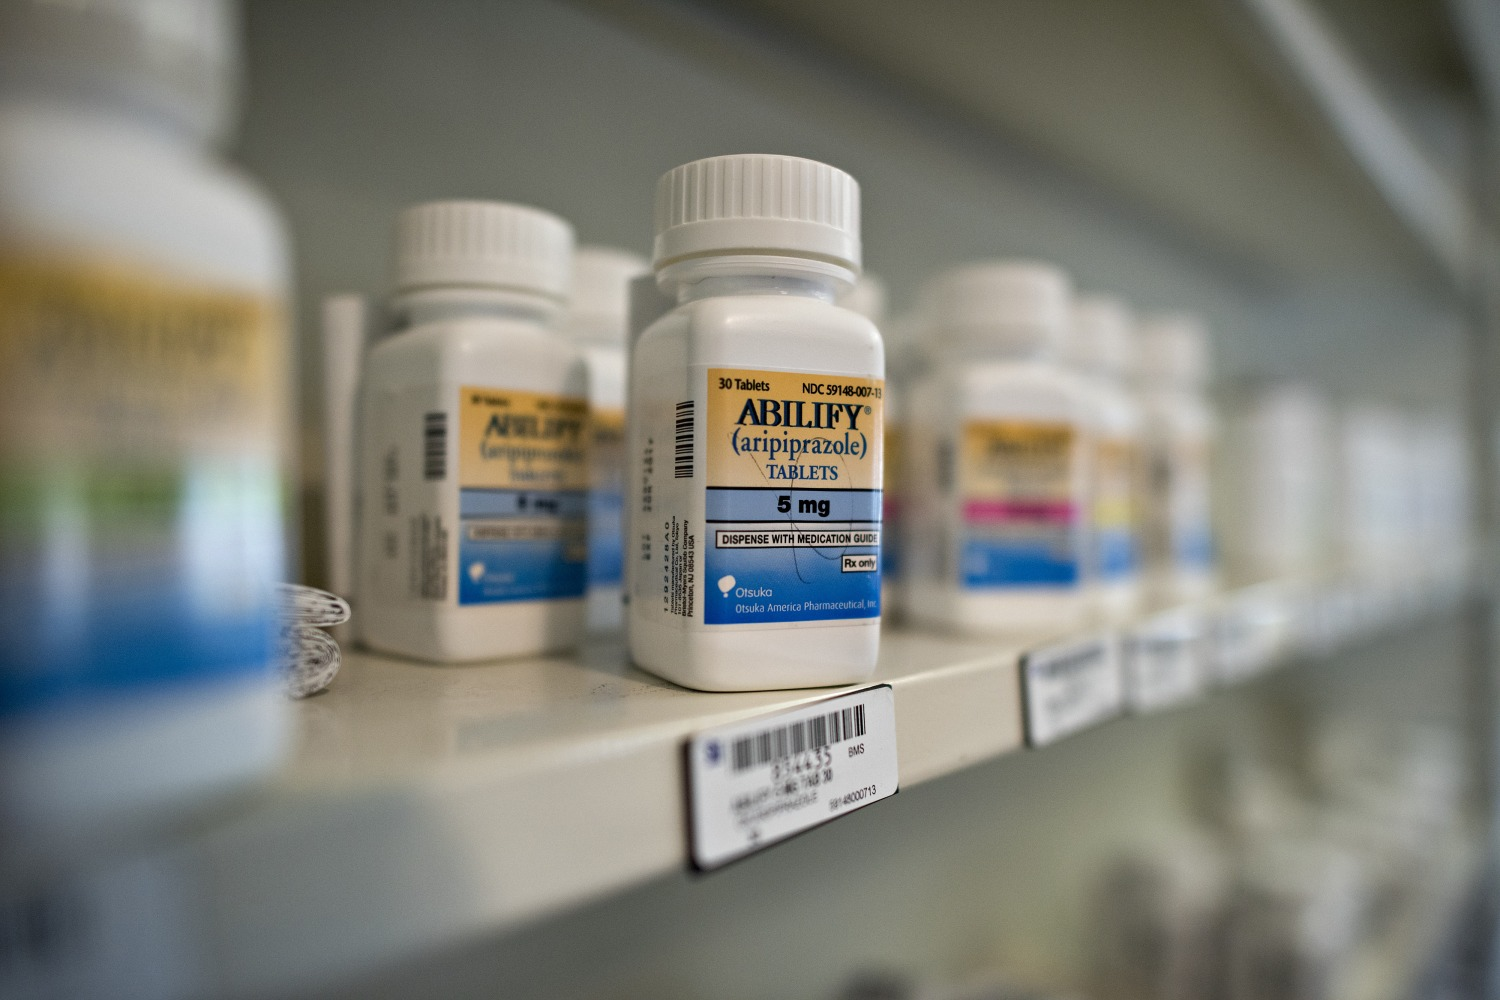 New Drugs Found To Cause Side Effects Years After Approval